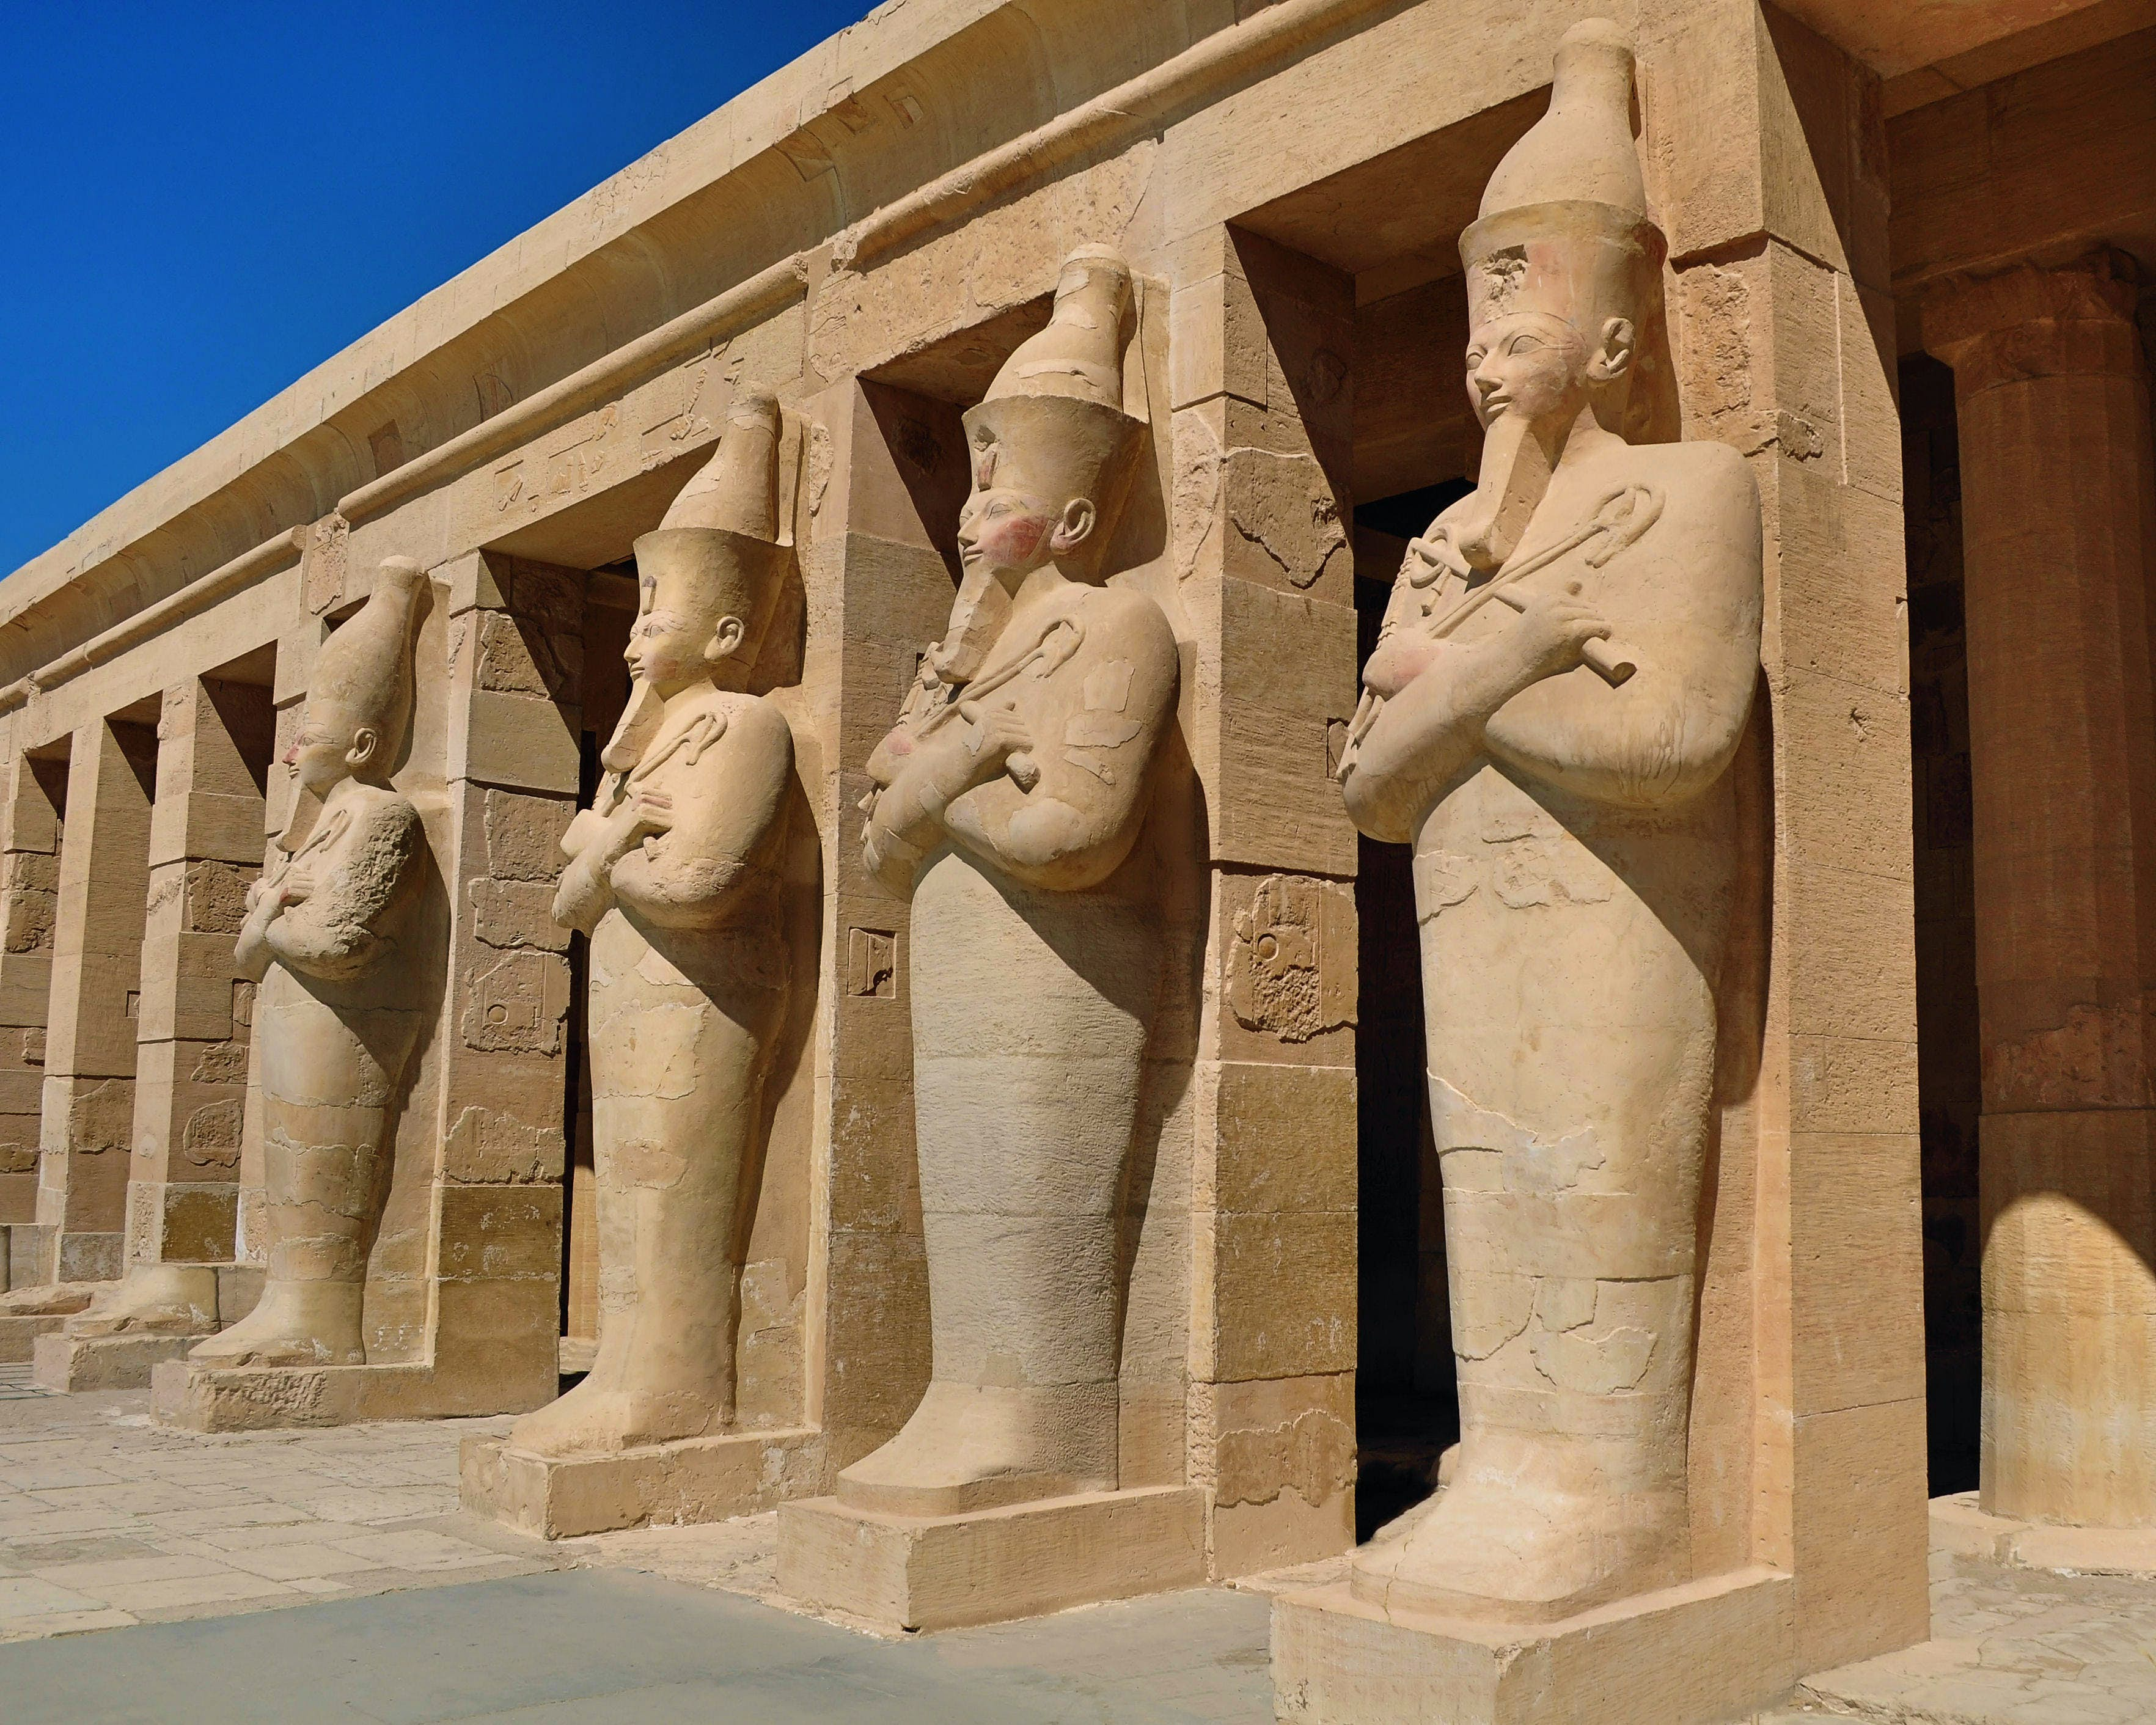 Mortuary temple of Queen Hatshepsut at Deir el-Bahri, Luxor, Egypt